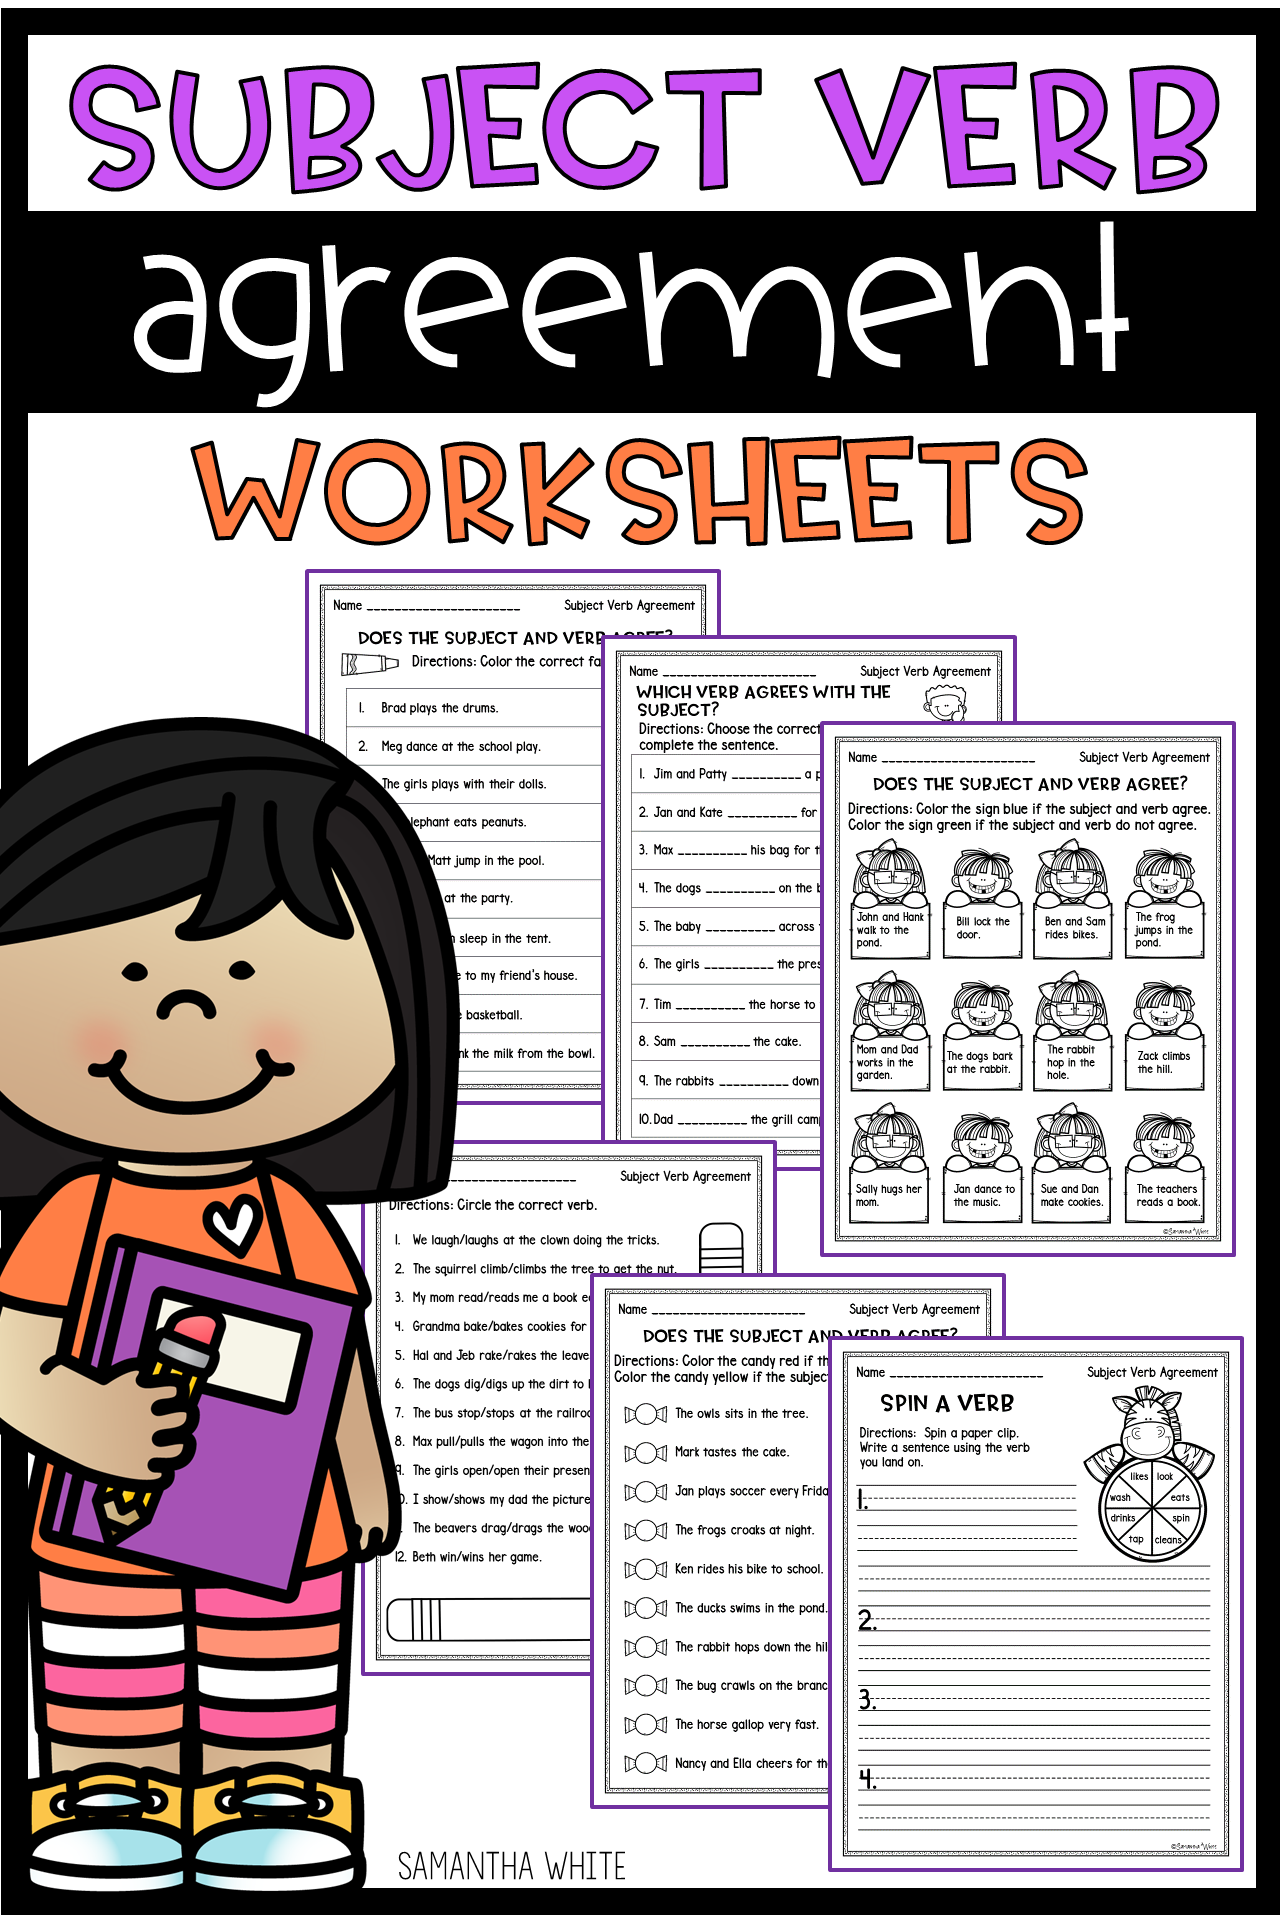 Subject Verb Agreement Worksheets With Images